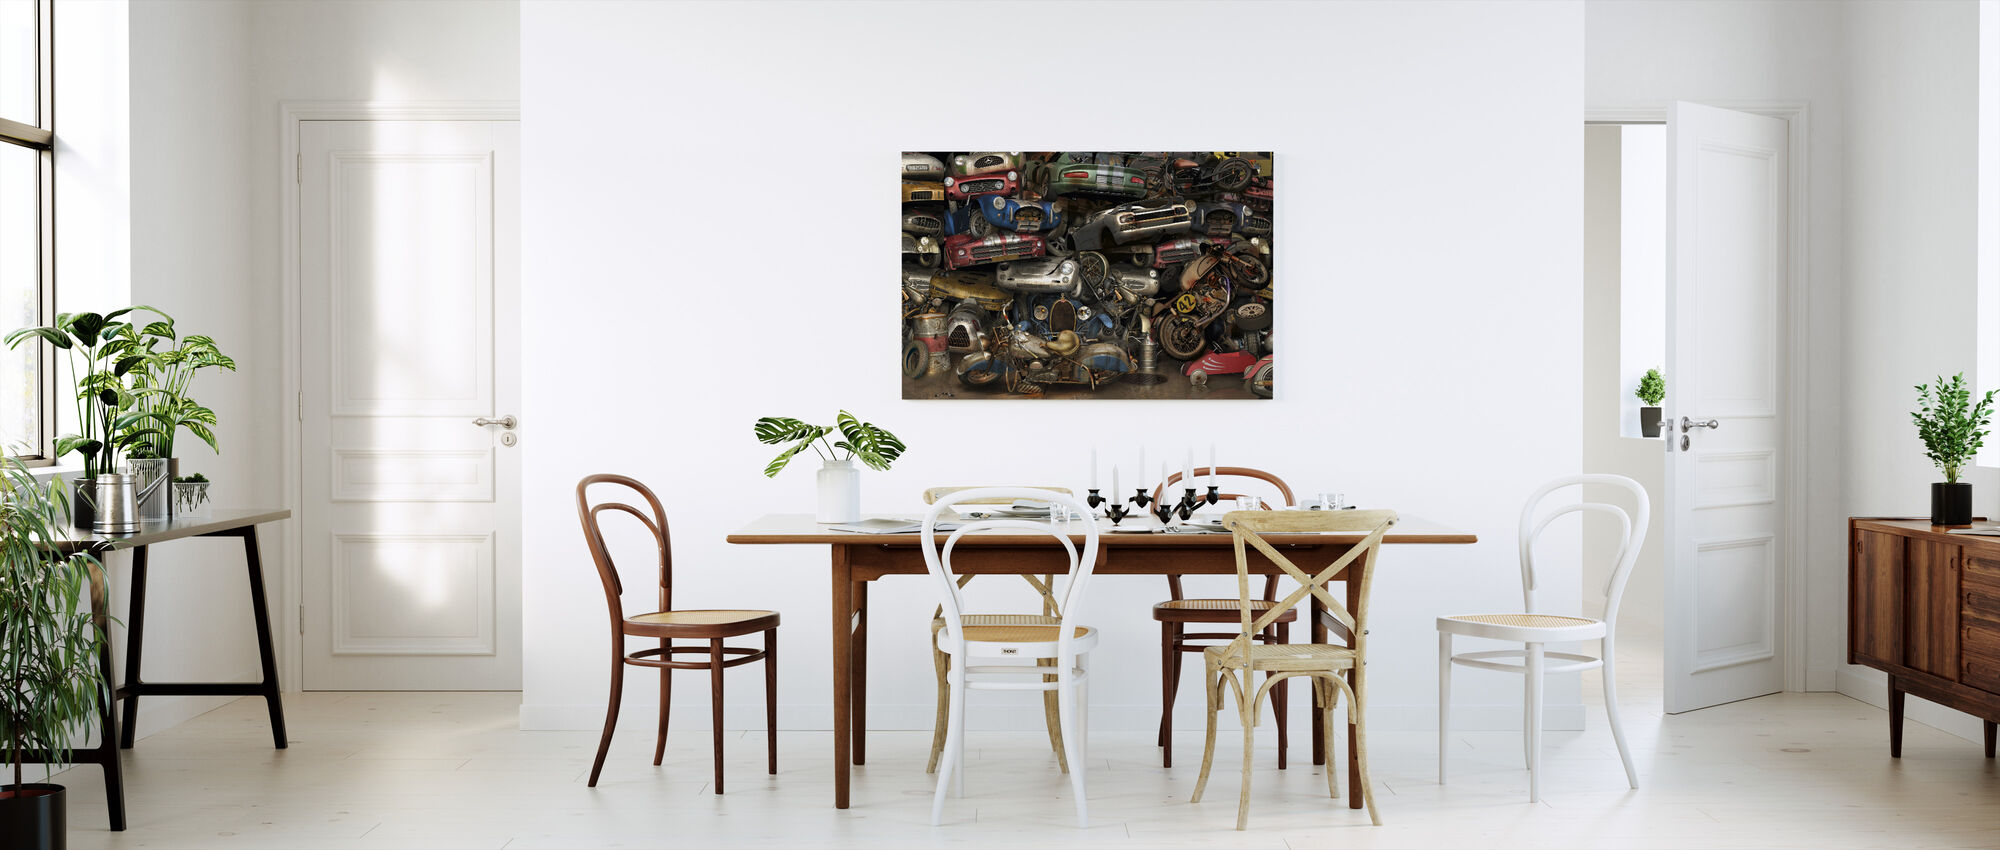 Recycling Wall - Canvas print - Kitchen